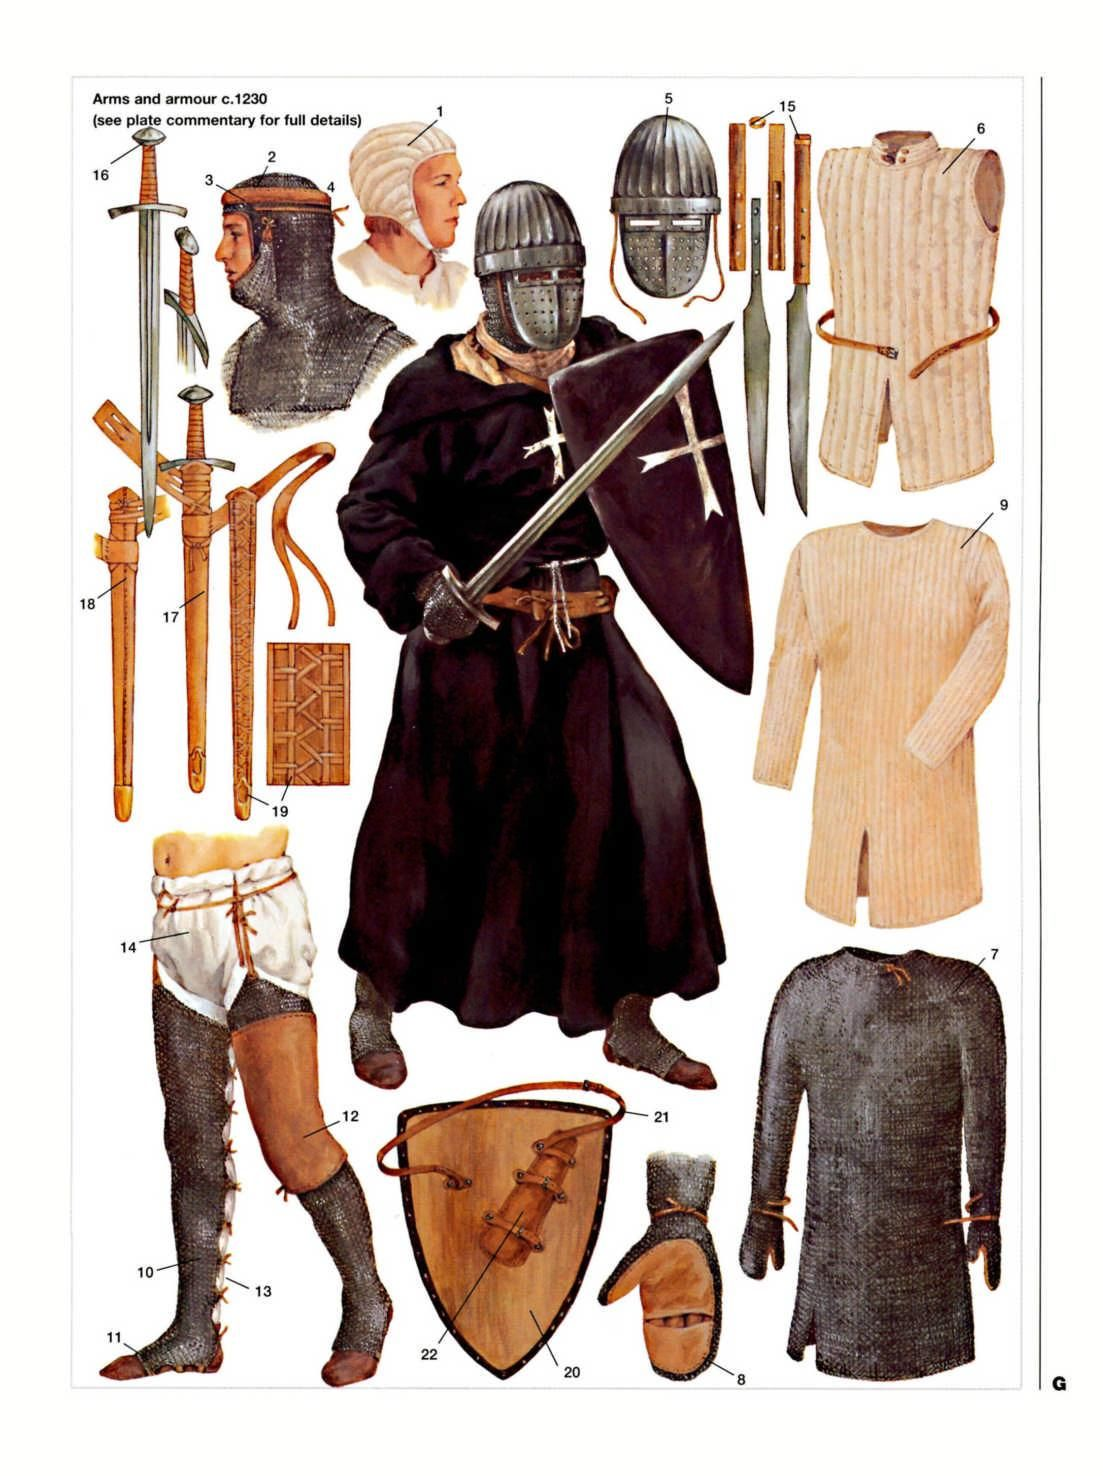 Knights - armor pieces. 13th century. Might need a historical check, but looks right at first glance.